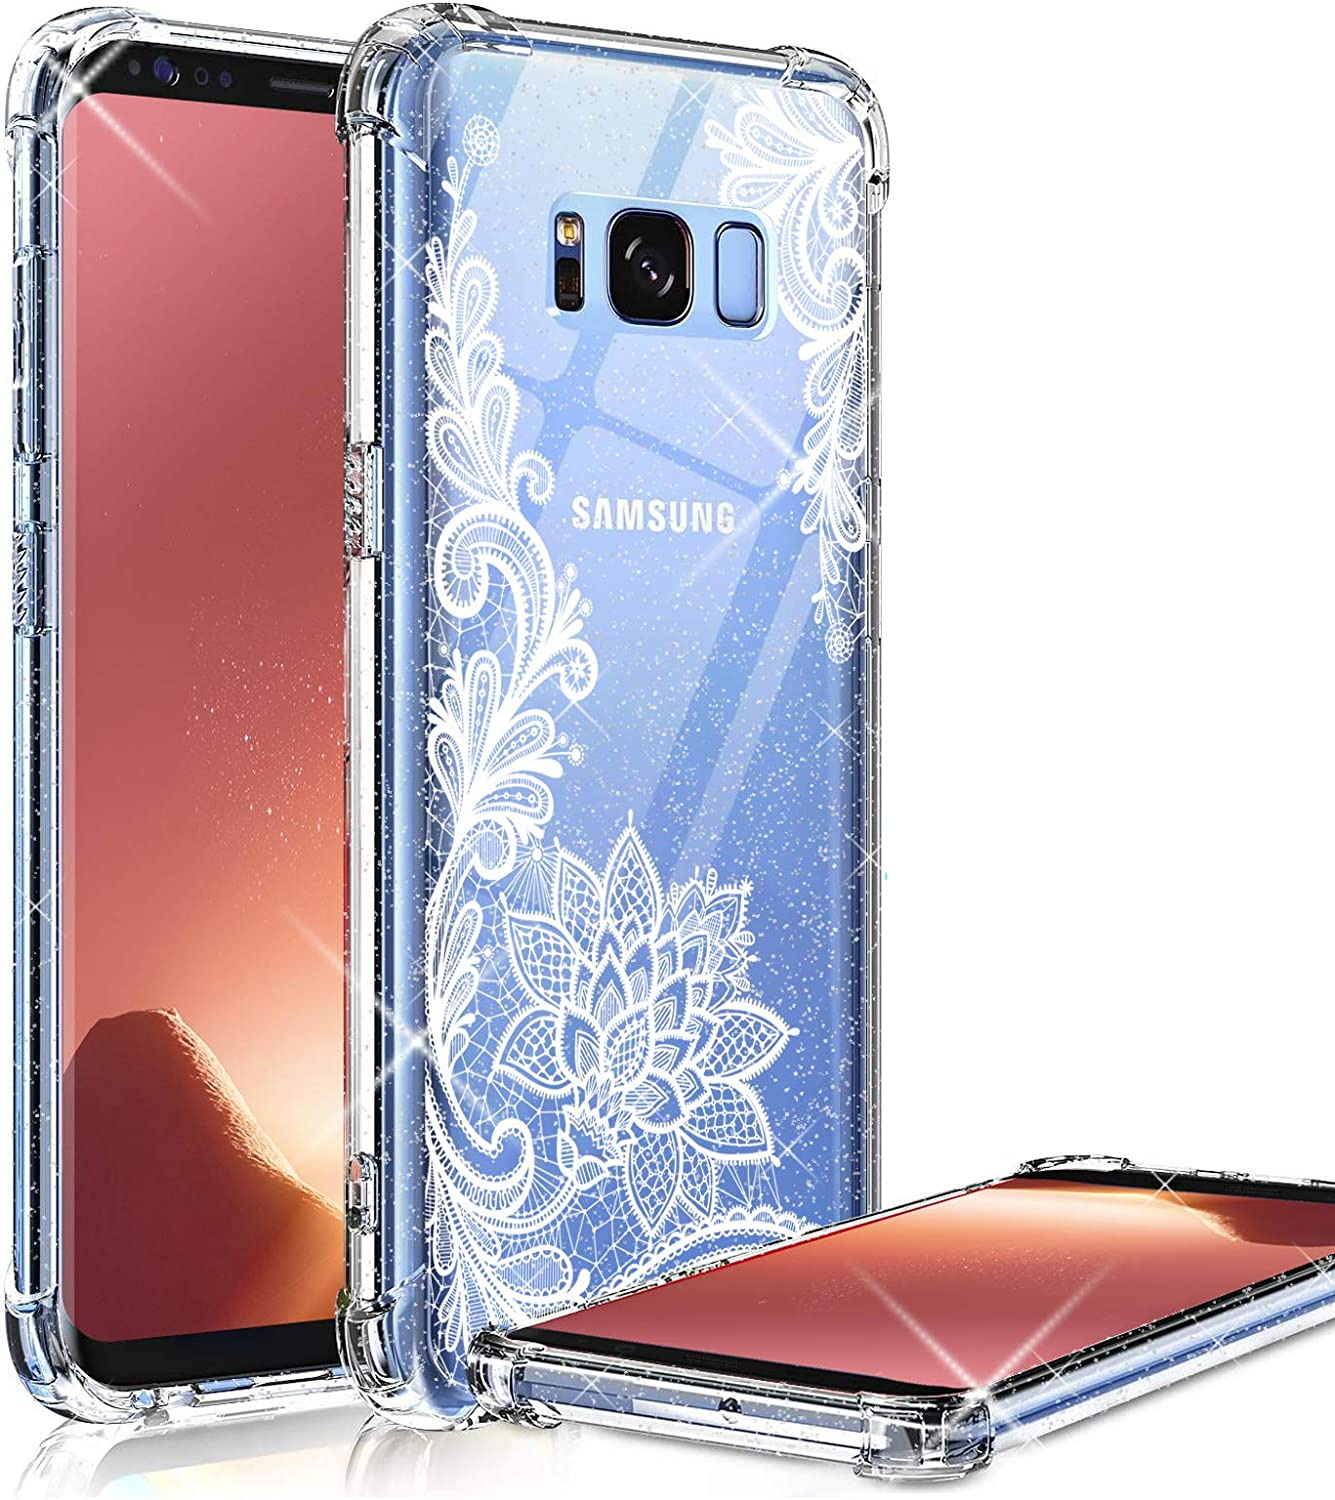 KIOMY Clear Glitter Case for Samsung Galaxy S8 Plus, Girls Women Bling Sparkle Shiny Luxury Case with Lace Flower Design Shockproof Bumper Protective Floral Cell Phone Back Cover Slim Fit Flexible